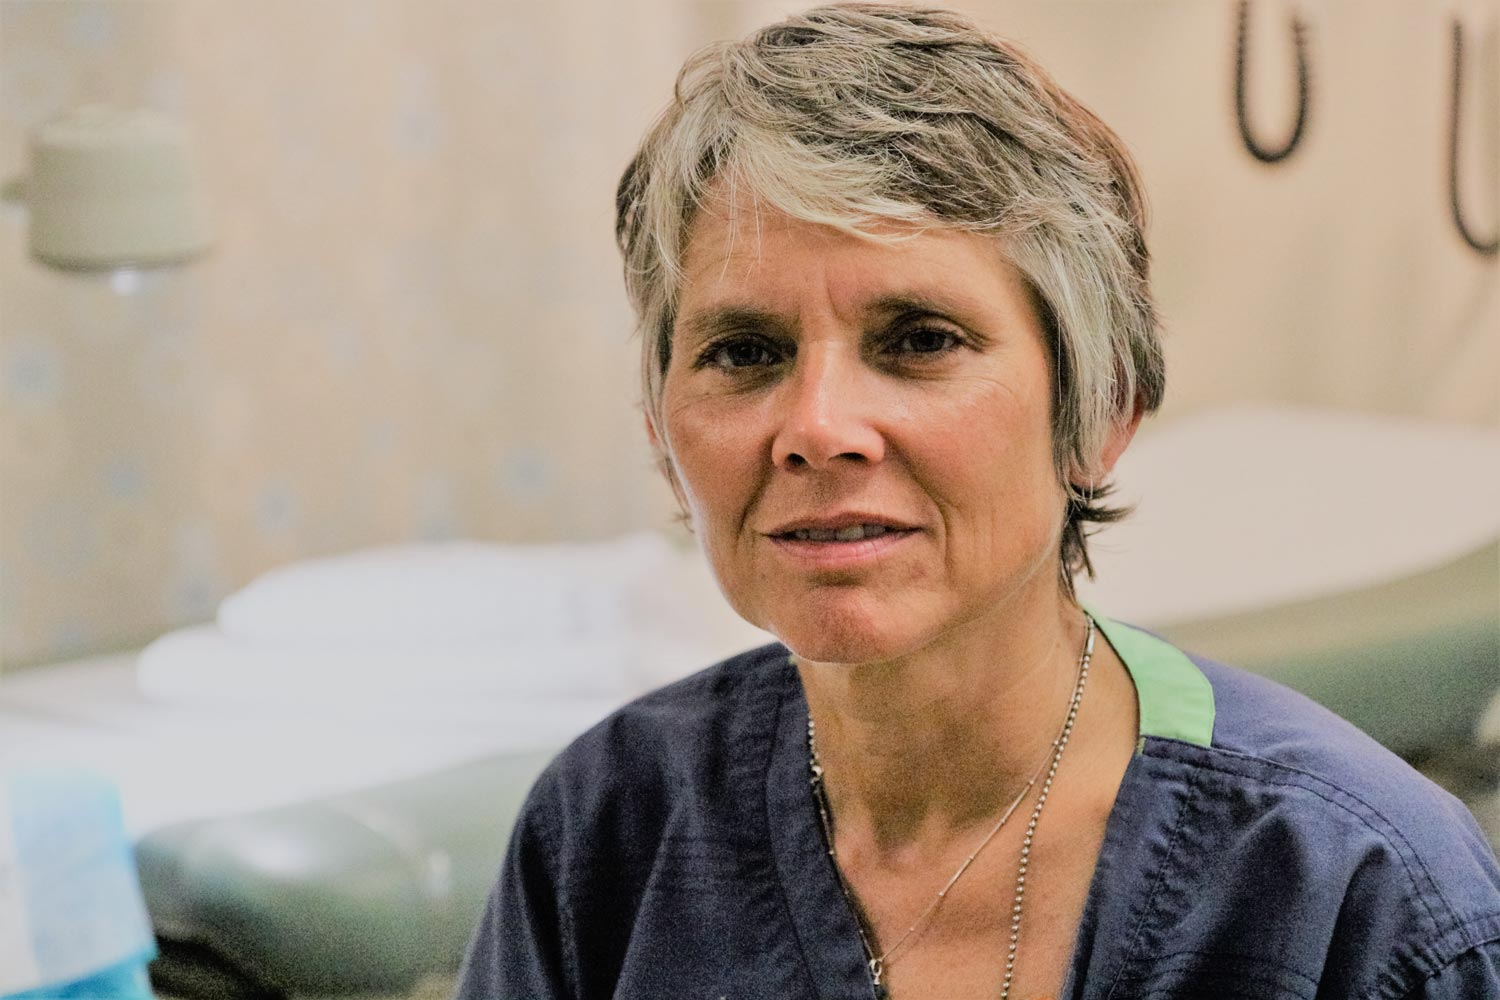 Forensic nurse examiner Kathryn Laughon is leading an effort tcases of attempted strangulation, backed by a $726,000 grant from the Uo better identify cases of attempted strangulation, baced by a $726,000 grant from the U.S. Department of Justice.